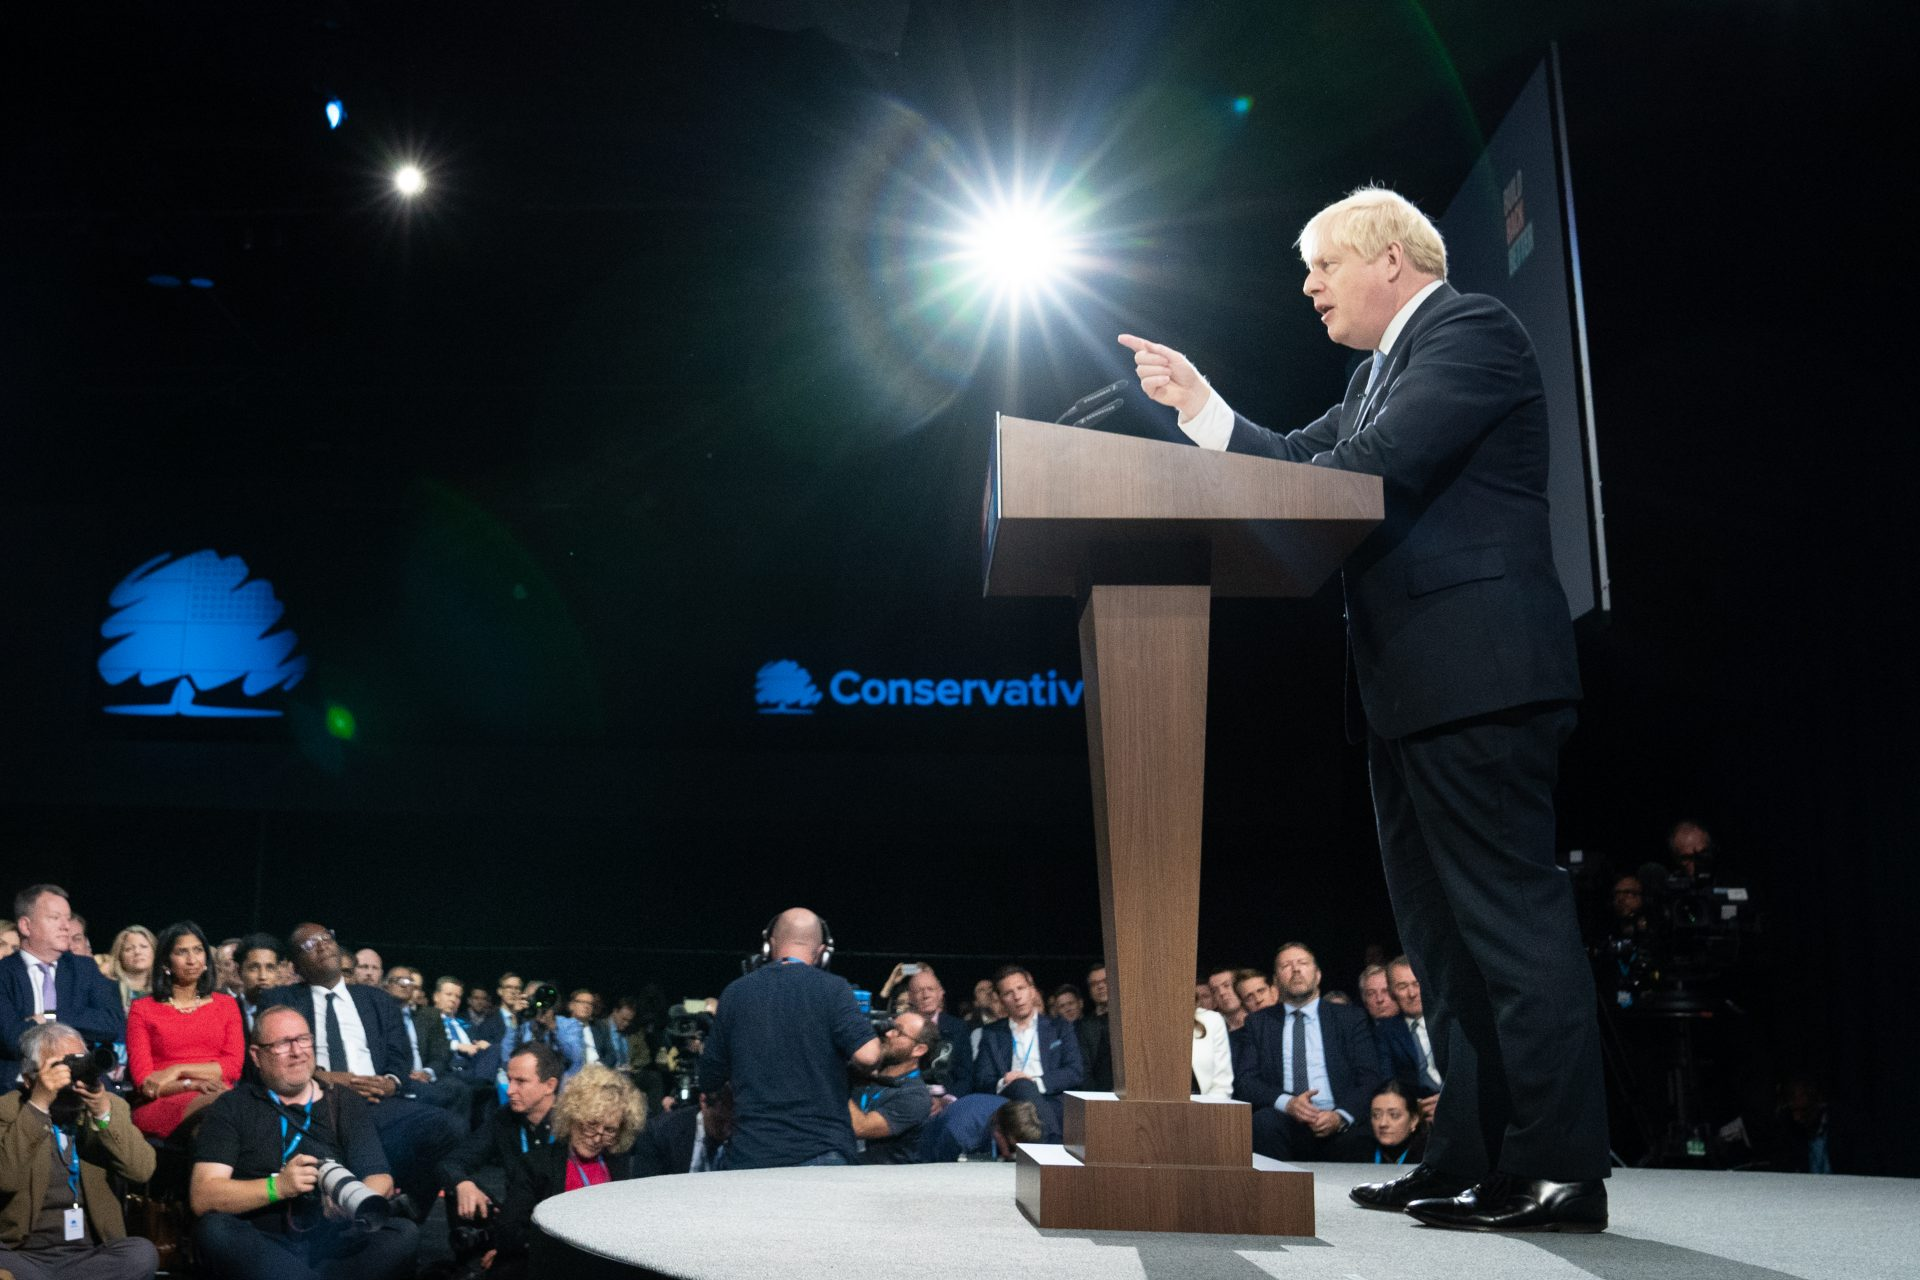 Prime Minister Boris Johnson delivers his speech at the Conservative Party Conference in Manchester.  Photograph: Stefan Rousseau/PA Wire/PA Images.